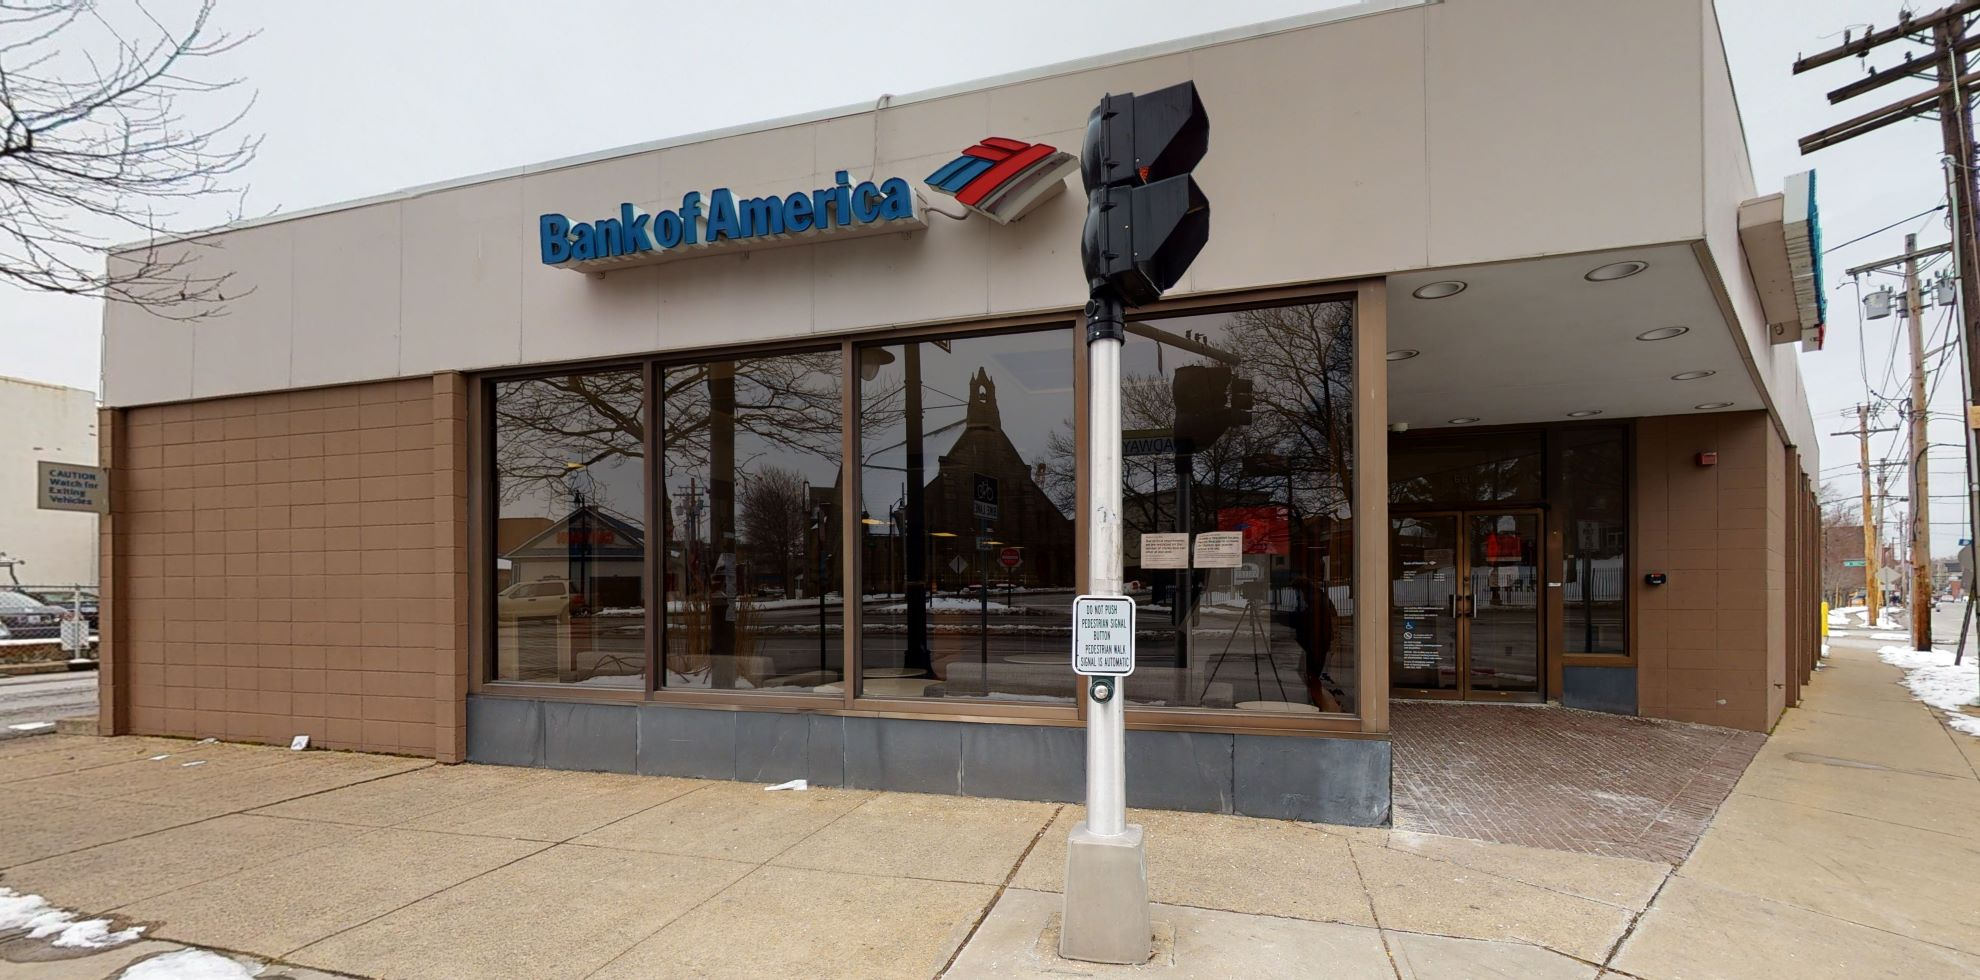 Bank of America financial center with drive-thru ATM   661 Broadway, Providence, RI 02909